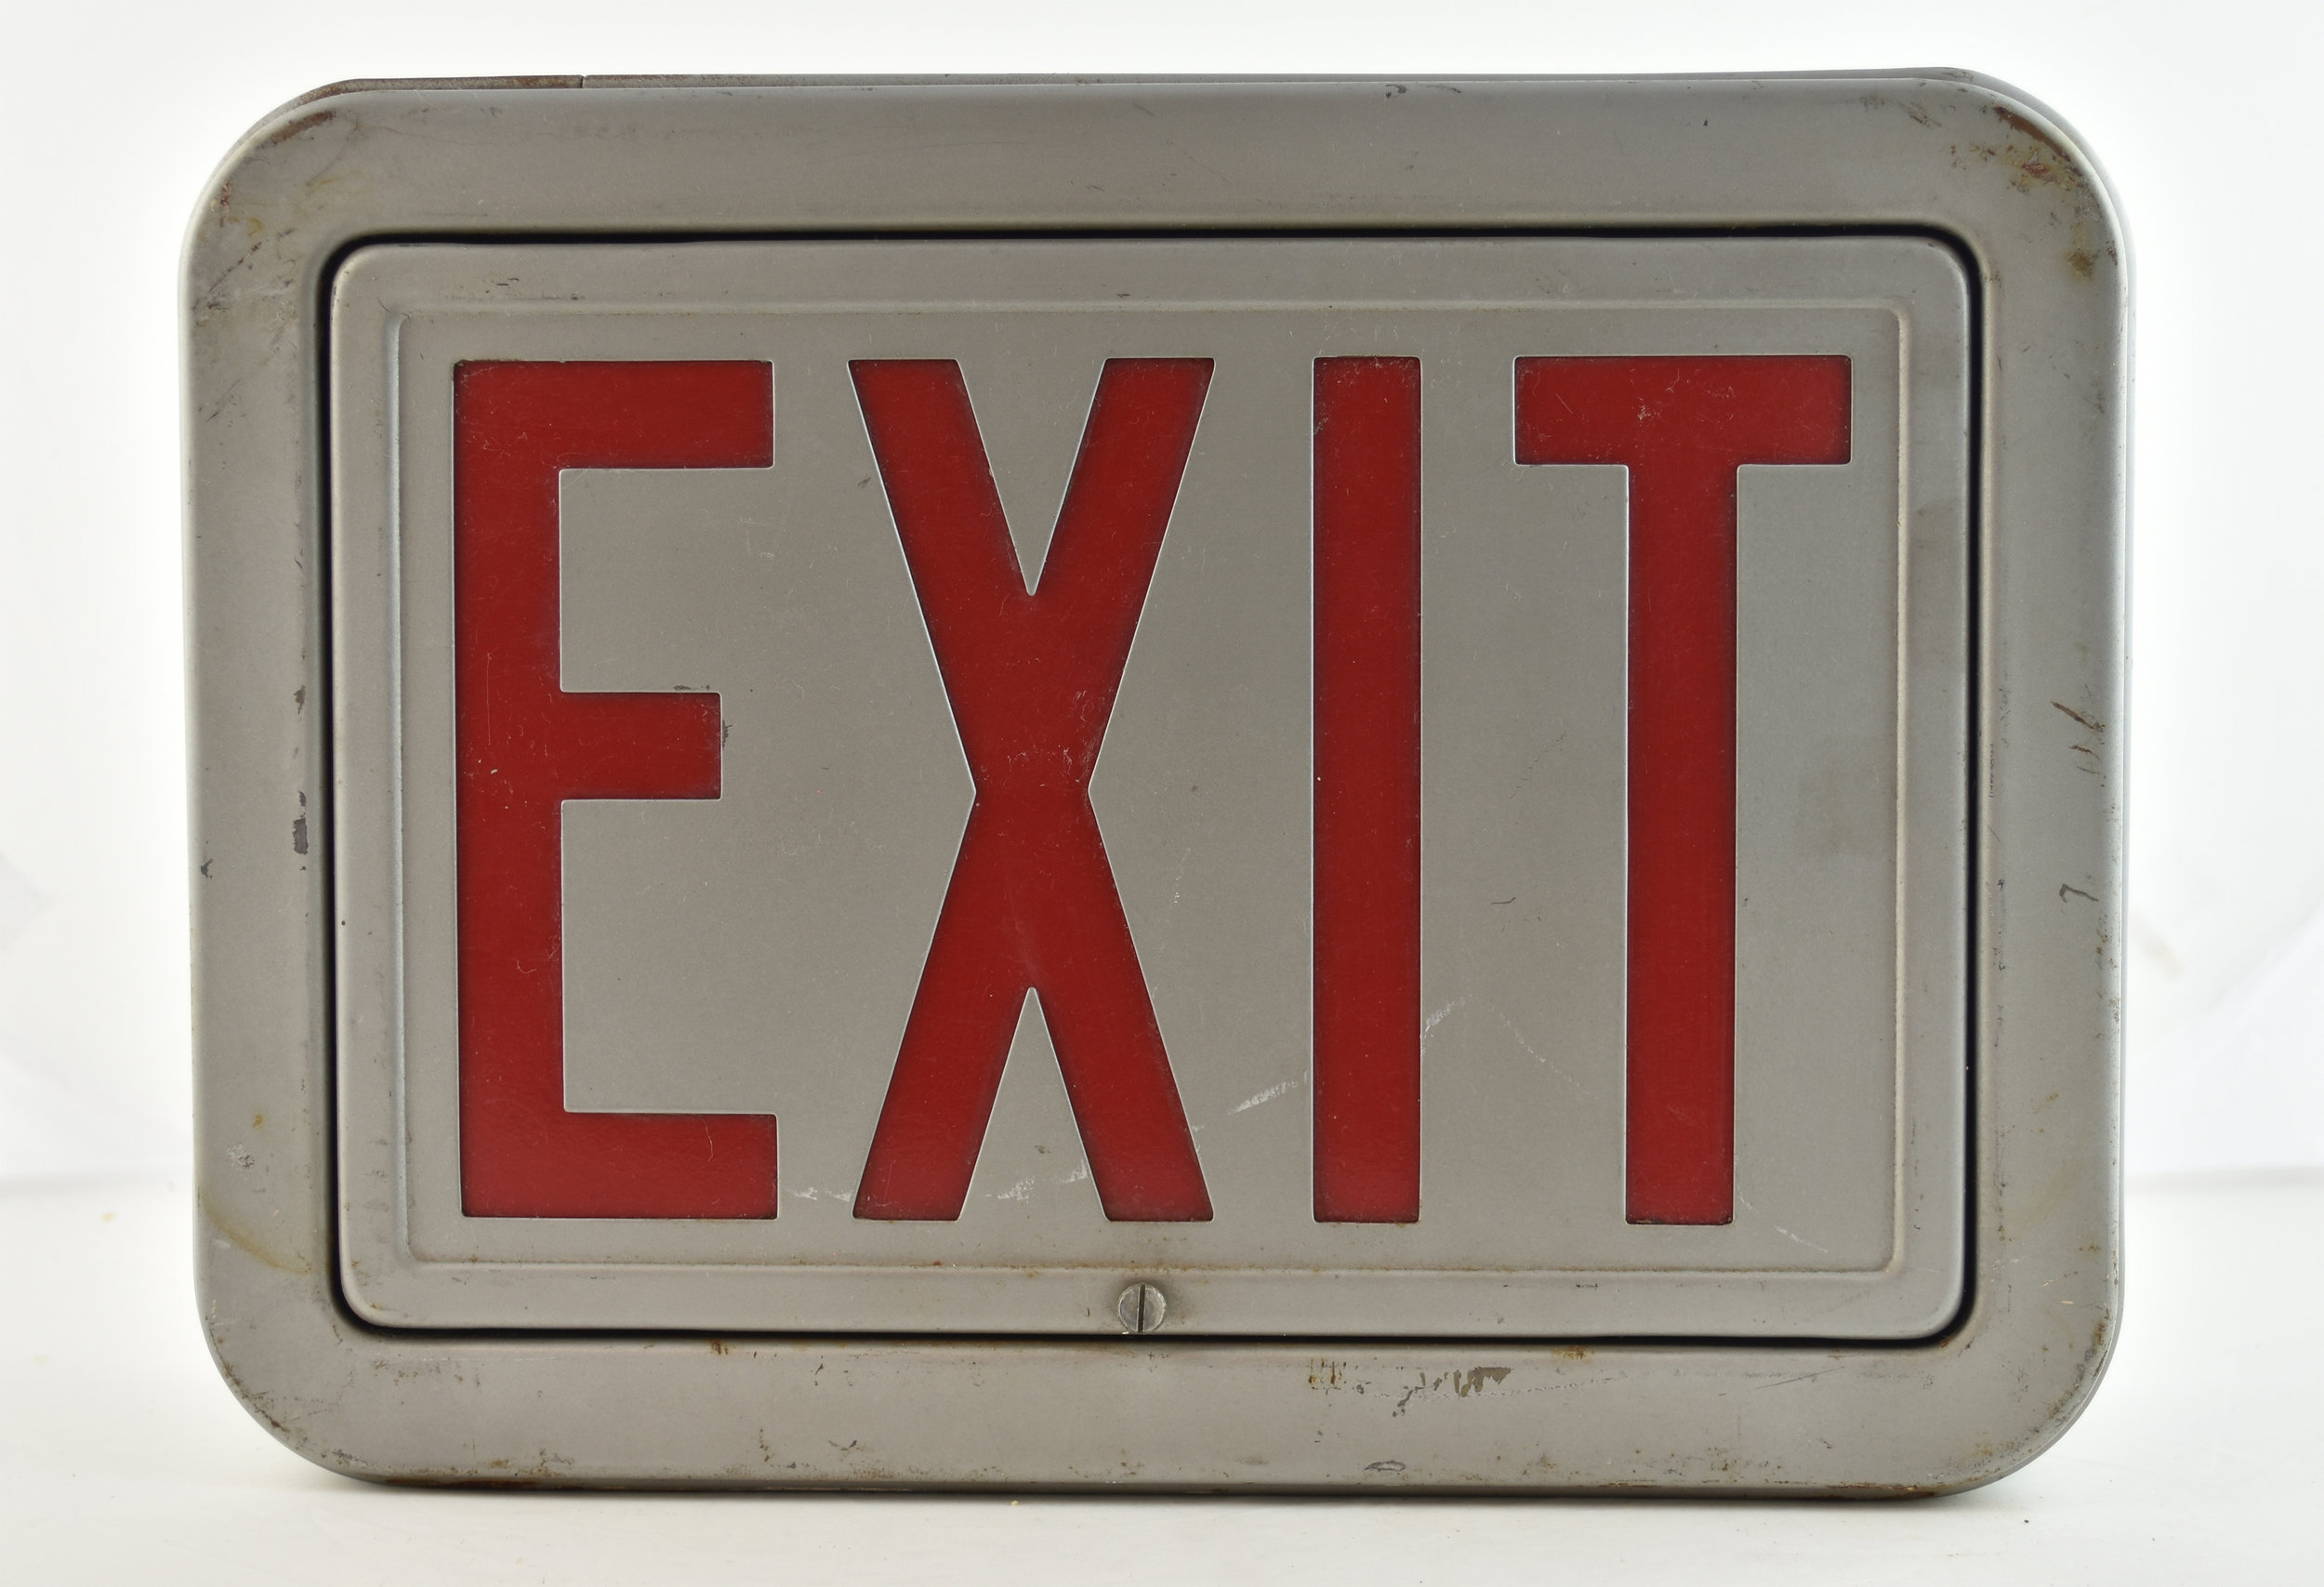 47485-steel-exit-signs-front-2.jpg